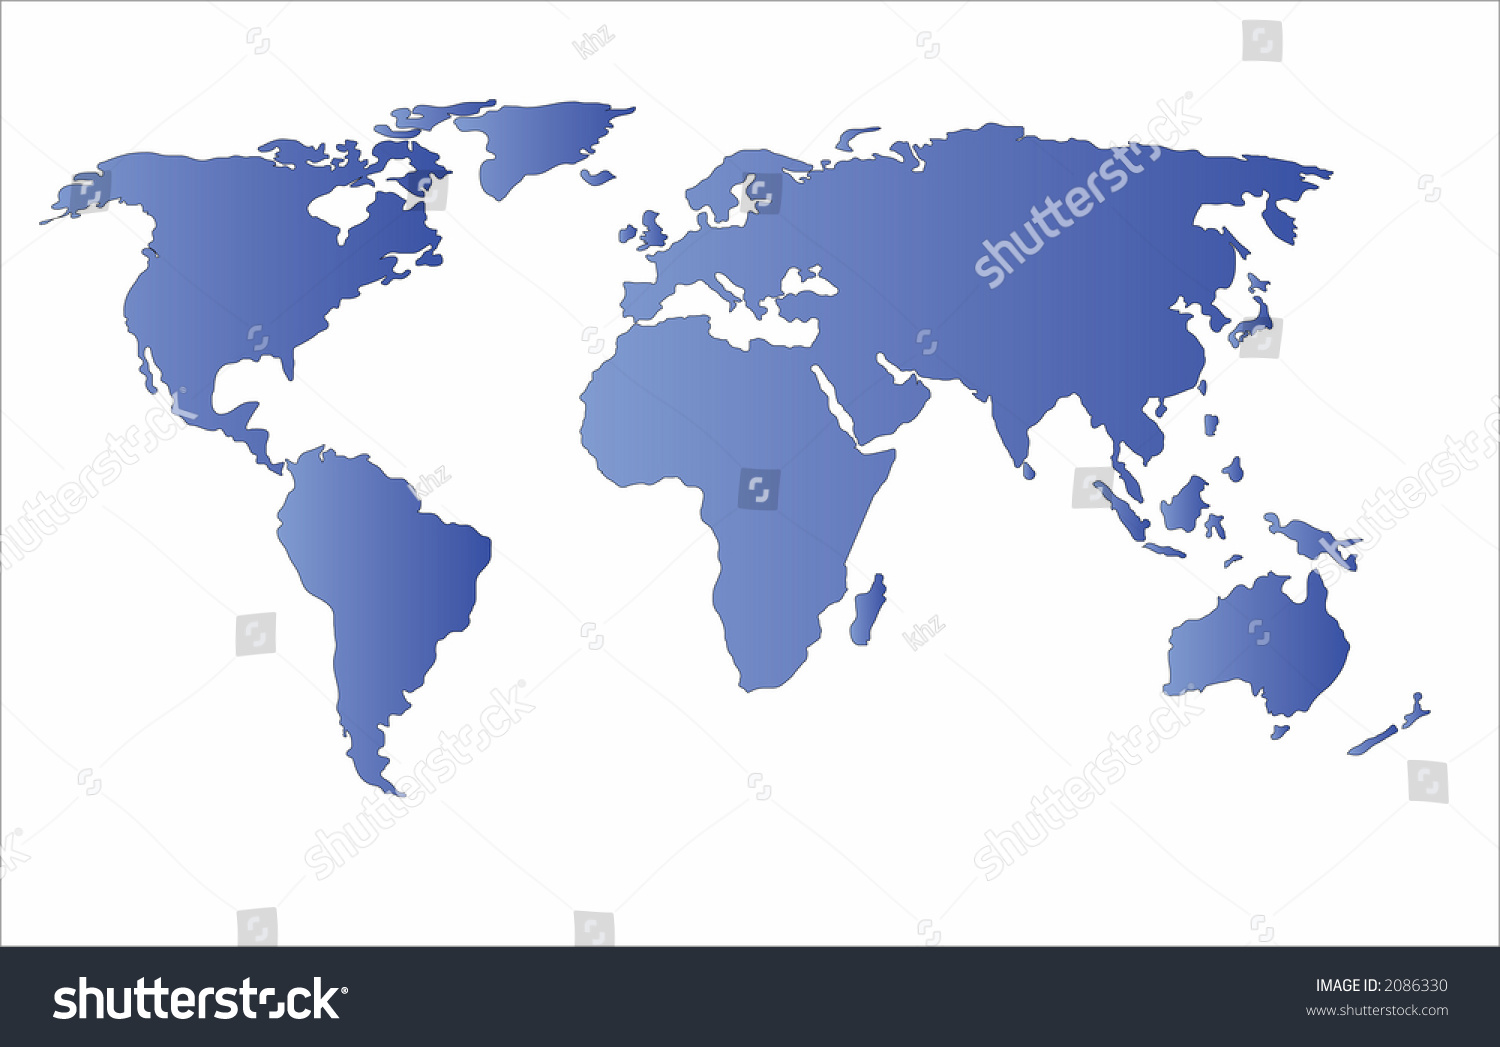 World map vector fromhttp perry castaneda library vector de world map vectorp fromhttplibutexas gumiabroncs Choice Image